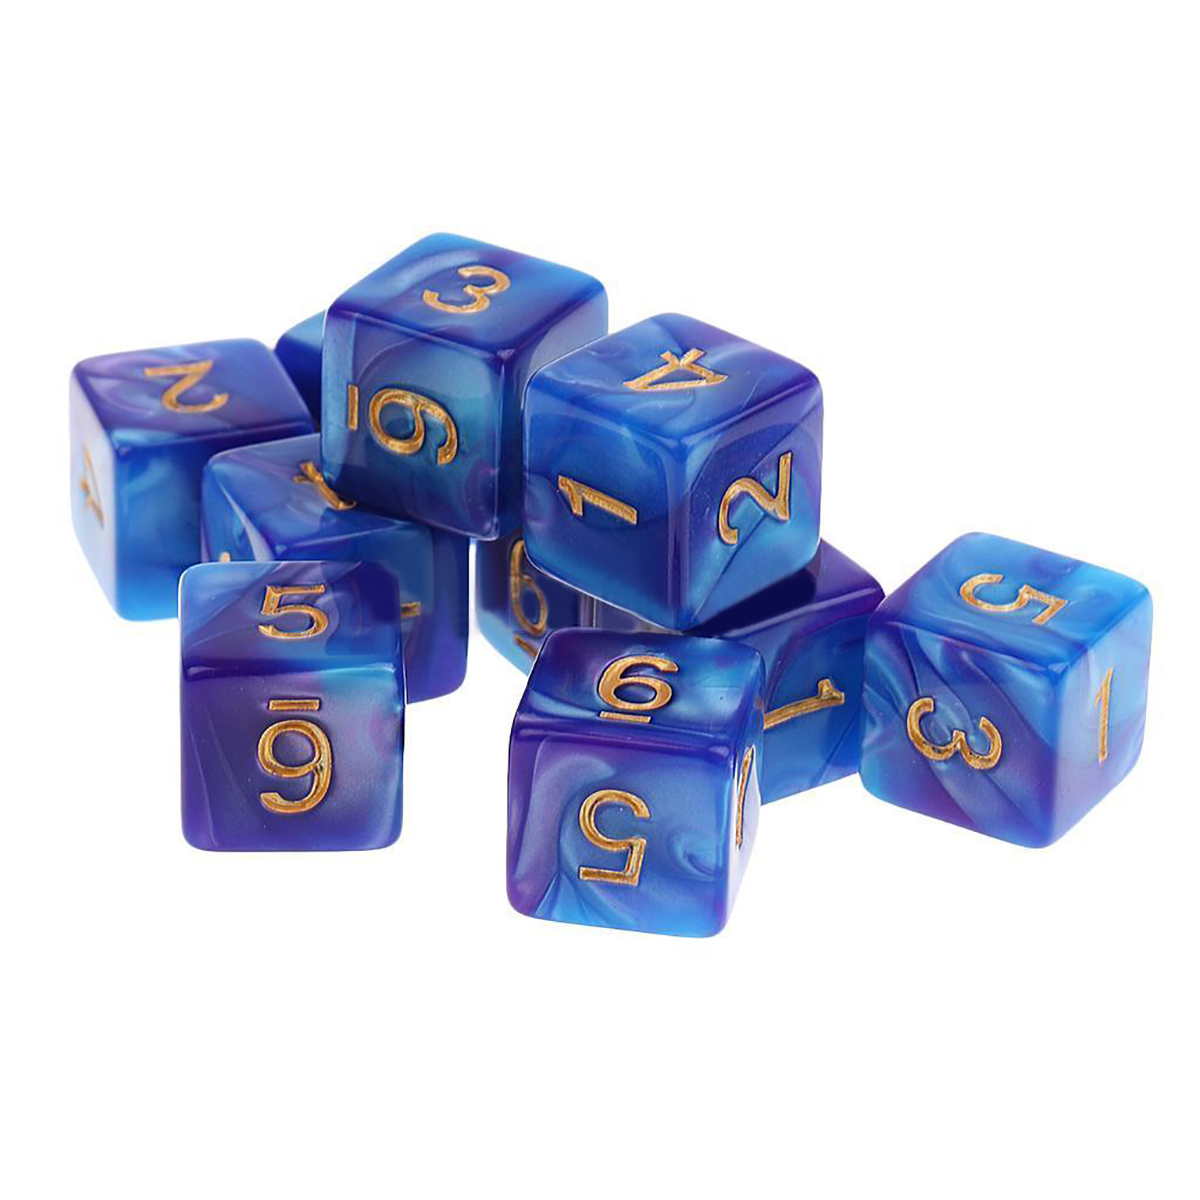 New Arrival 10pcs/set <font><b>D6</b></font> Sided <font><b>Dice</b></font> Set Polyhedral <font><b>Dice</b></font> For Dungeons Dragons <font><b>Dice</b></font> Game Gray/Black/<font><b>Green</b></font>/Blue/Red/Coffee/Purple image